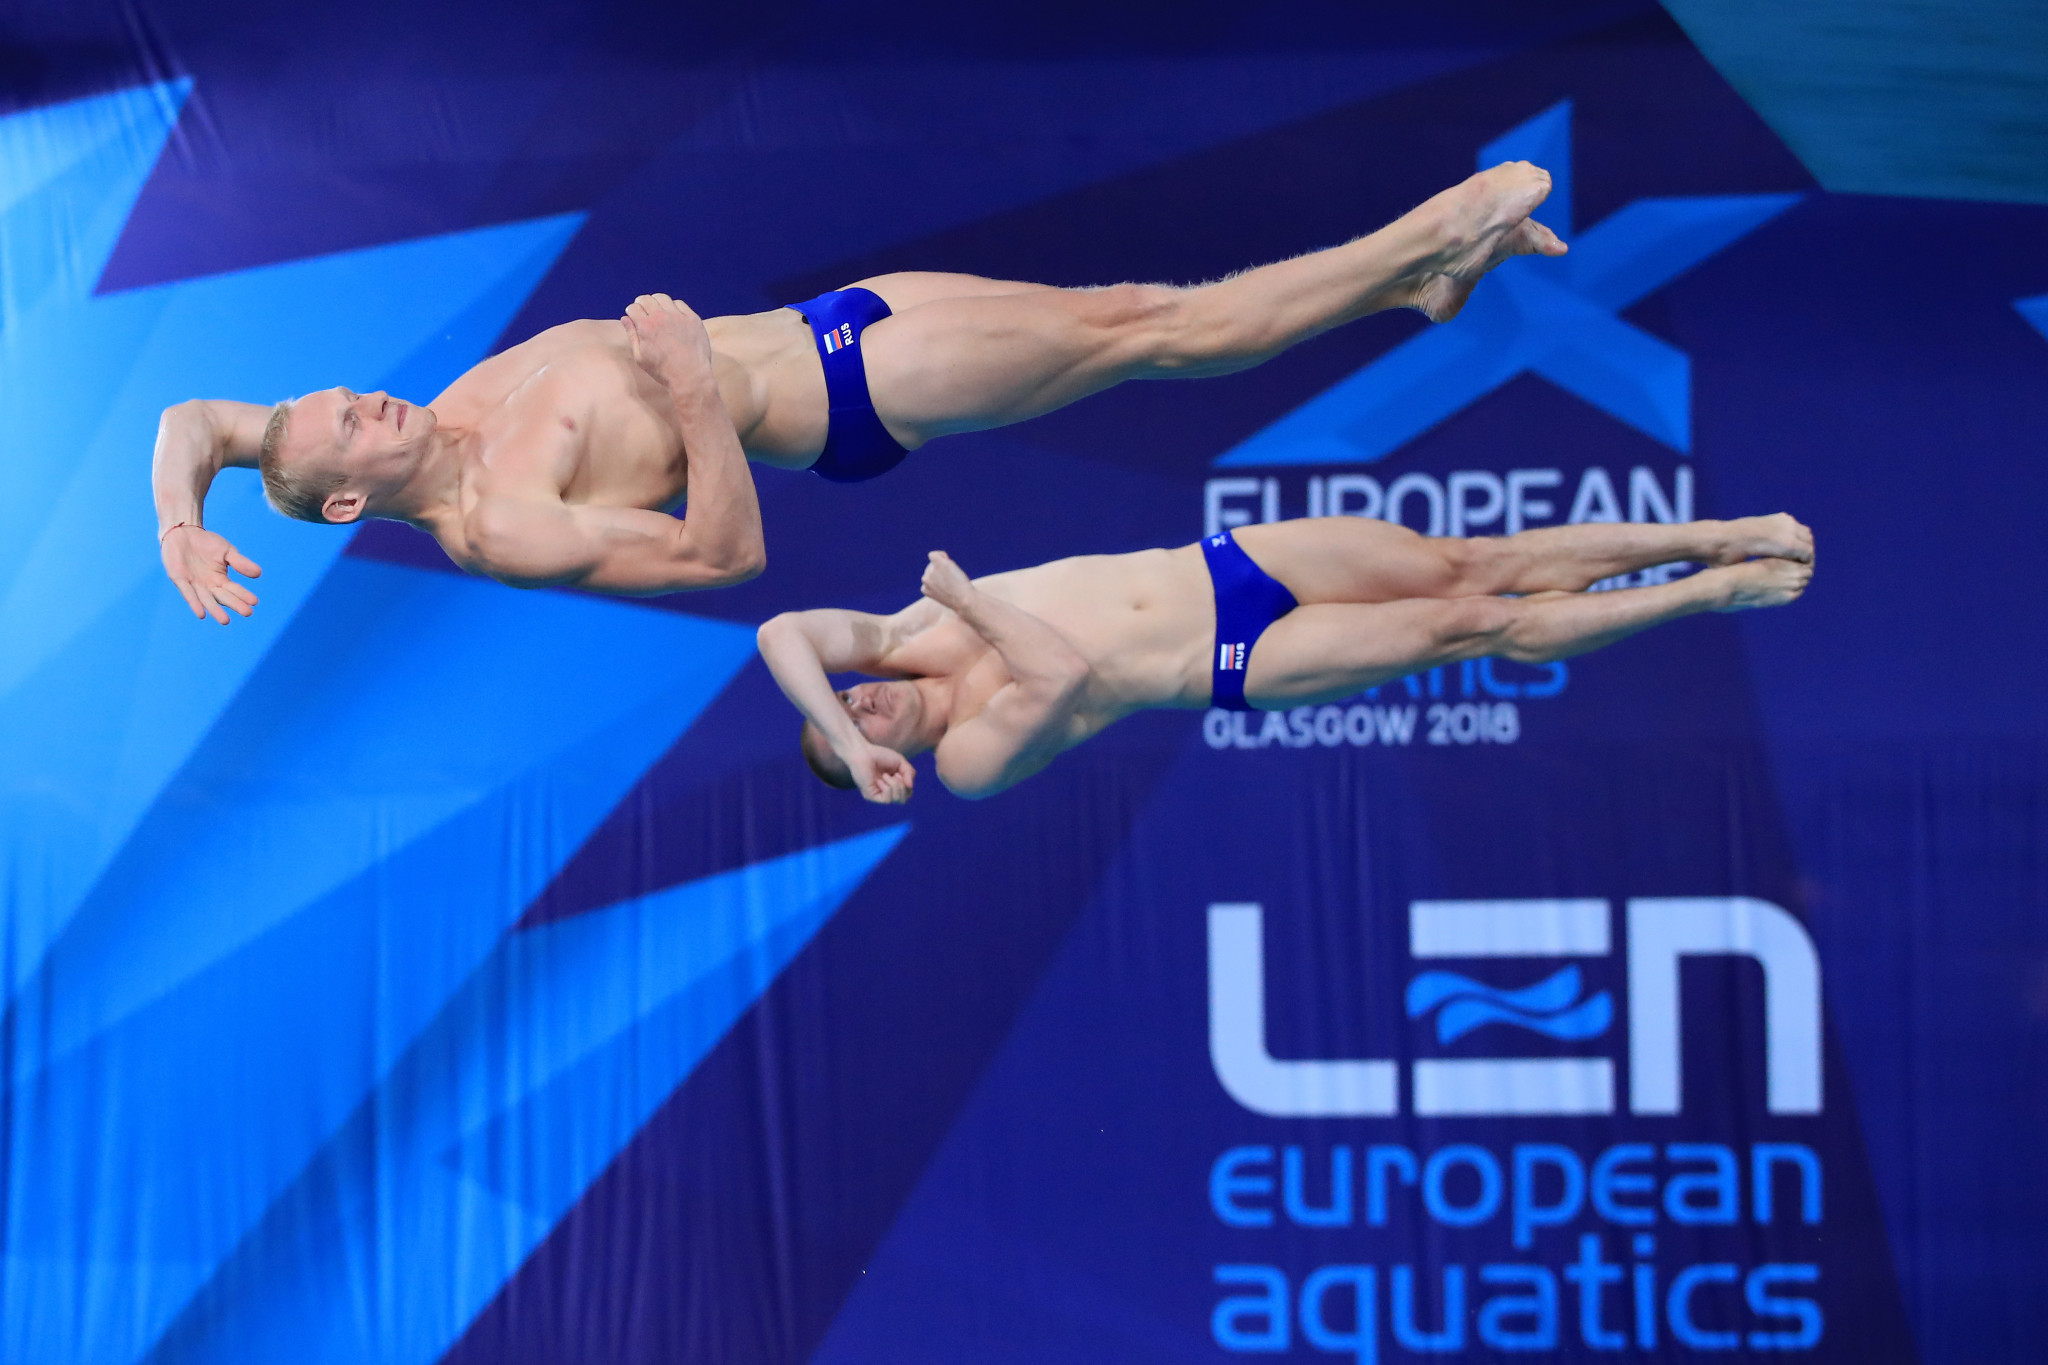 World champions clinch European Championships synchronised springboard title with final dive at Glasgow 2018